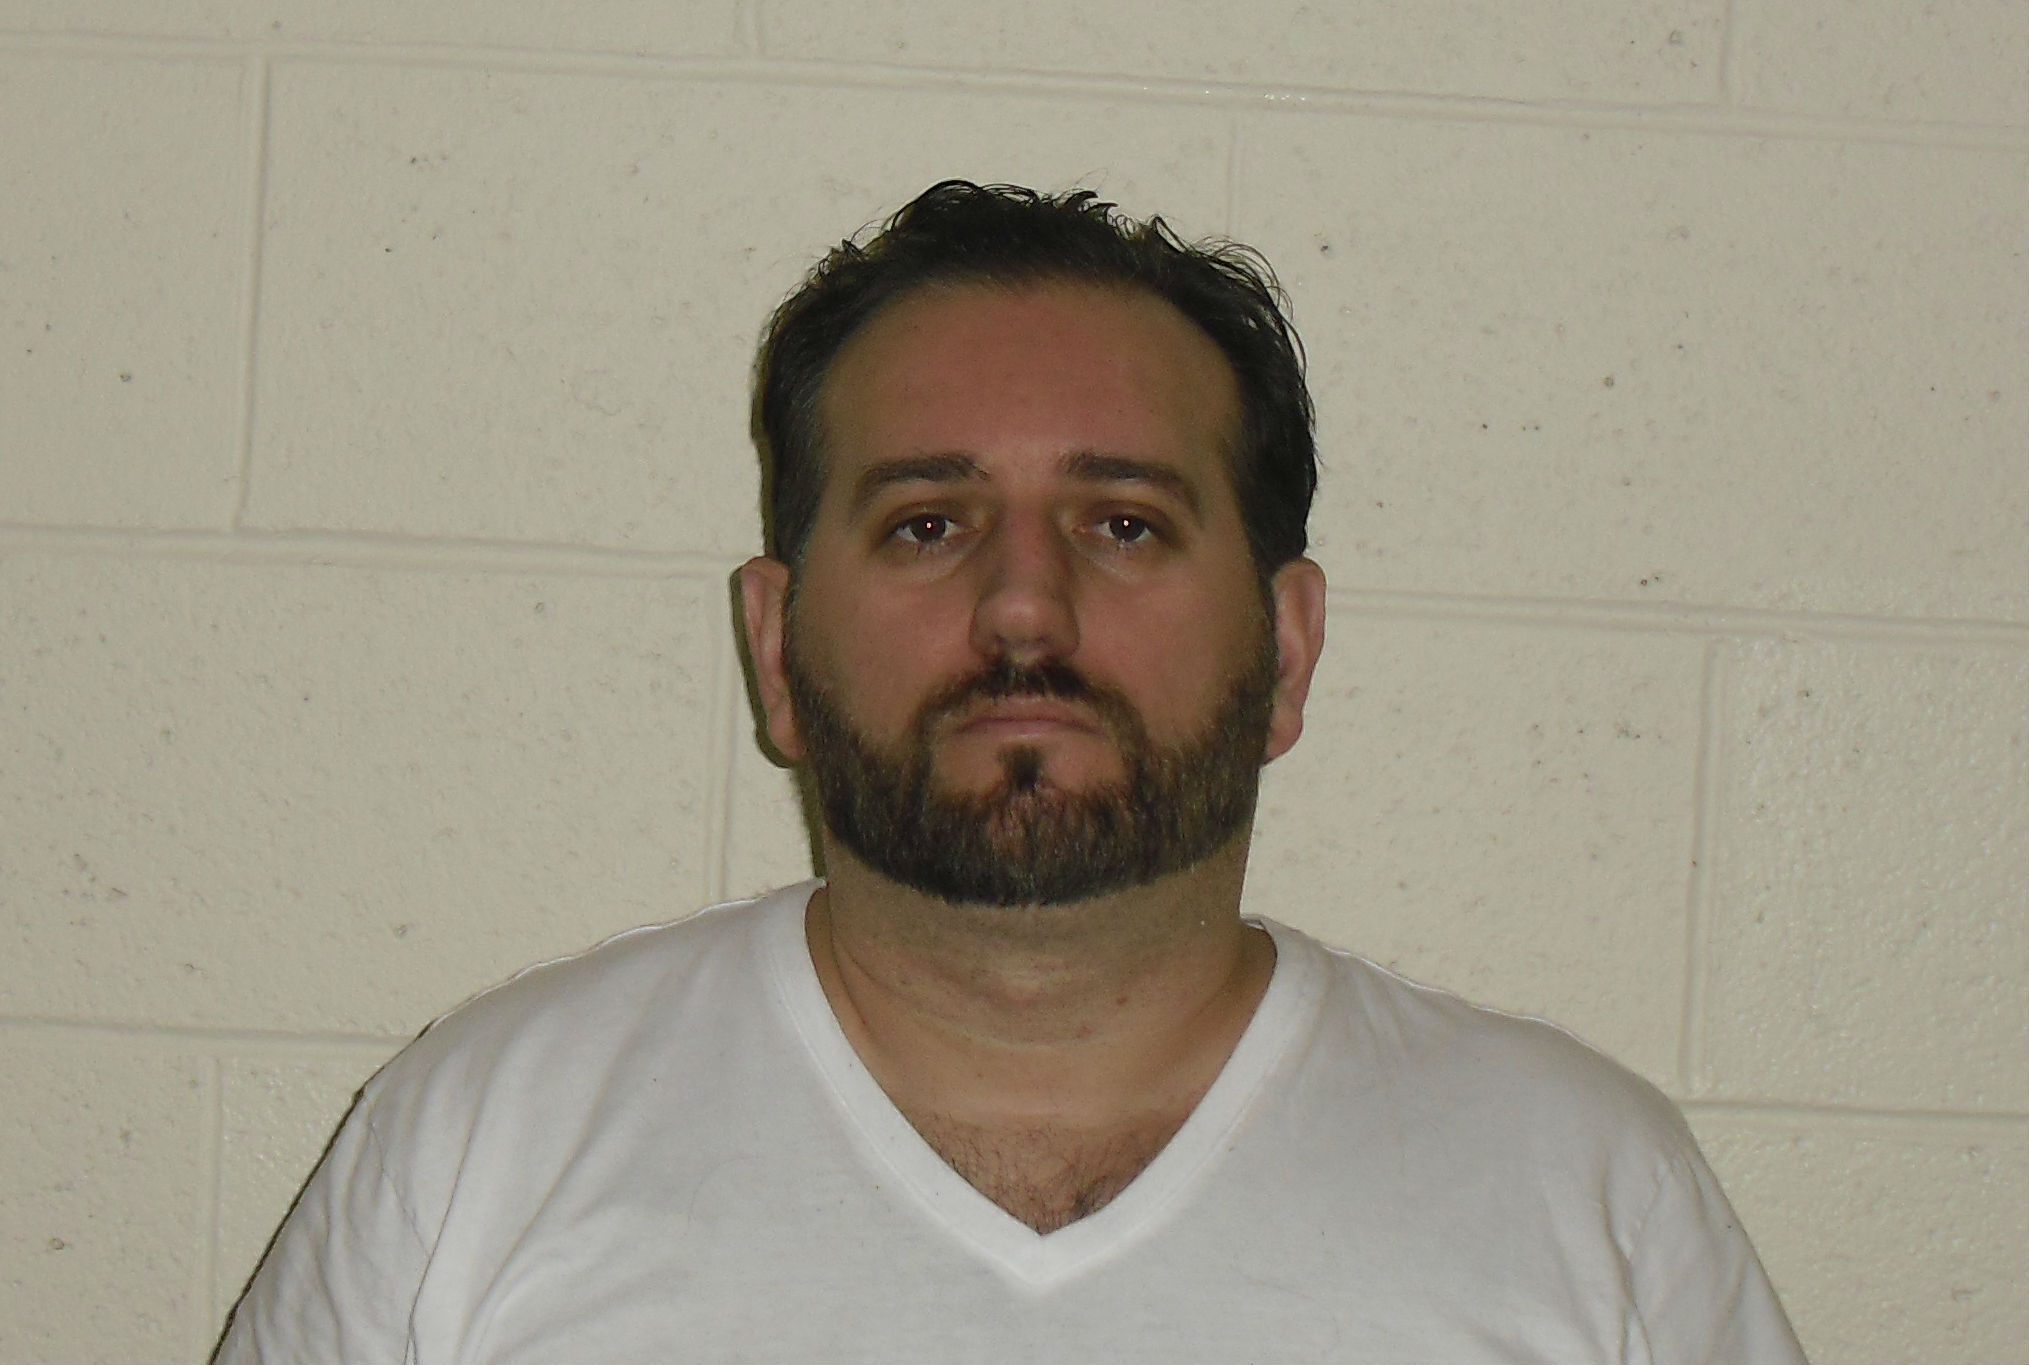 Dardian Celaj, the Albanian national and convicted felon who skipped out on sentencing earlier this month in a Derby rape case, was arrested Thursday in Connecticut, authorities said.